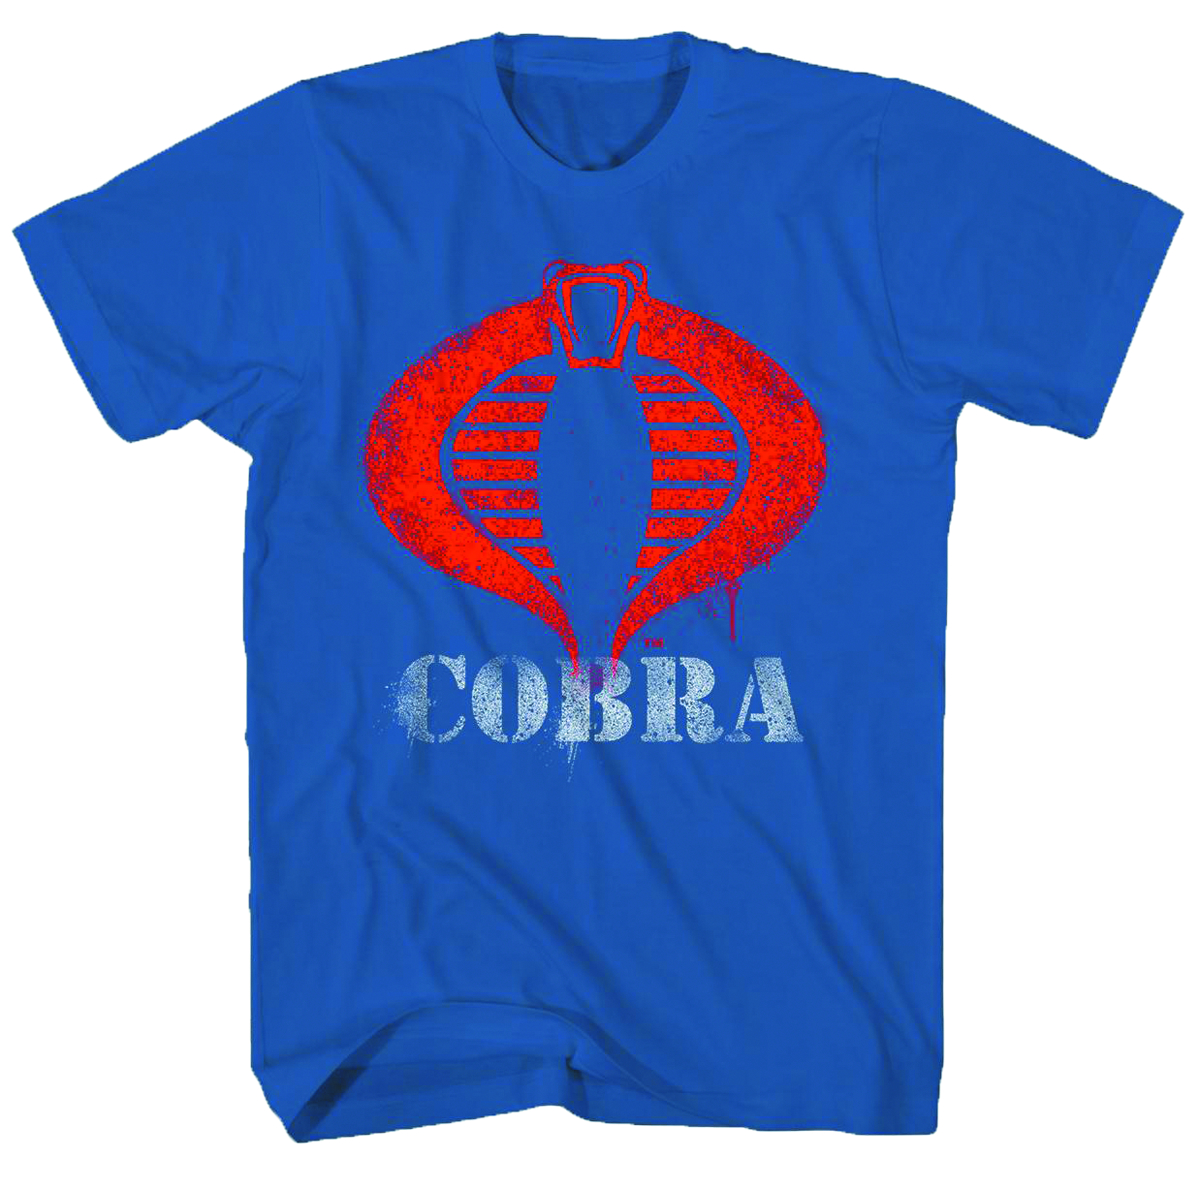 GI JOE COBRA LOGO PAINT NAVY T/S LG